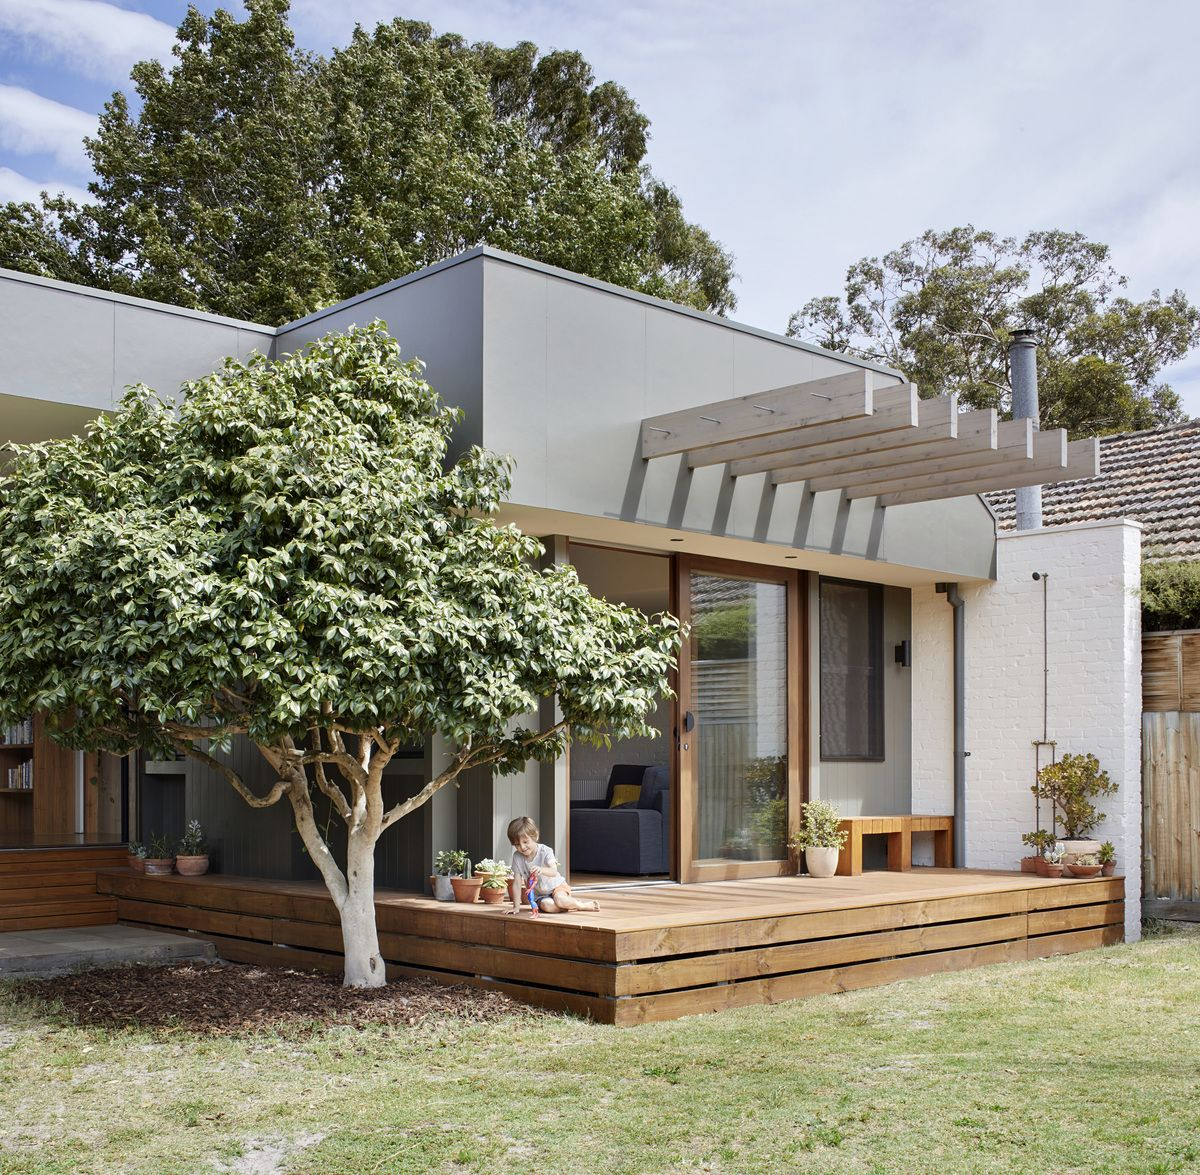 Modern Home Additions: A Courtyard Deck's The Perfect Way To Combine Old And New